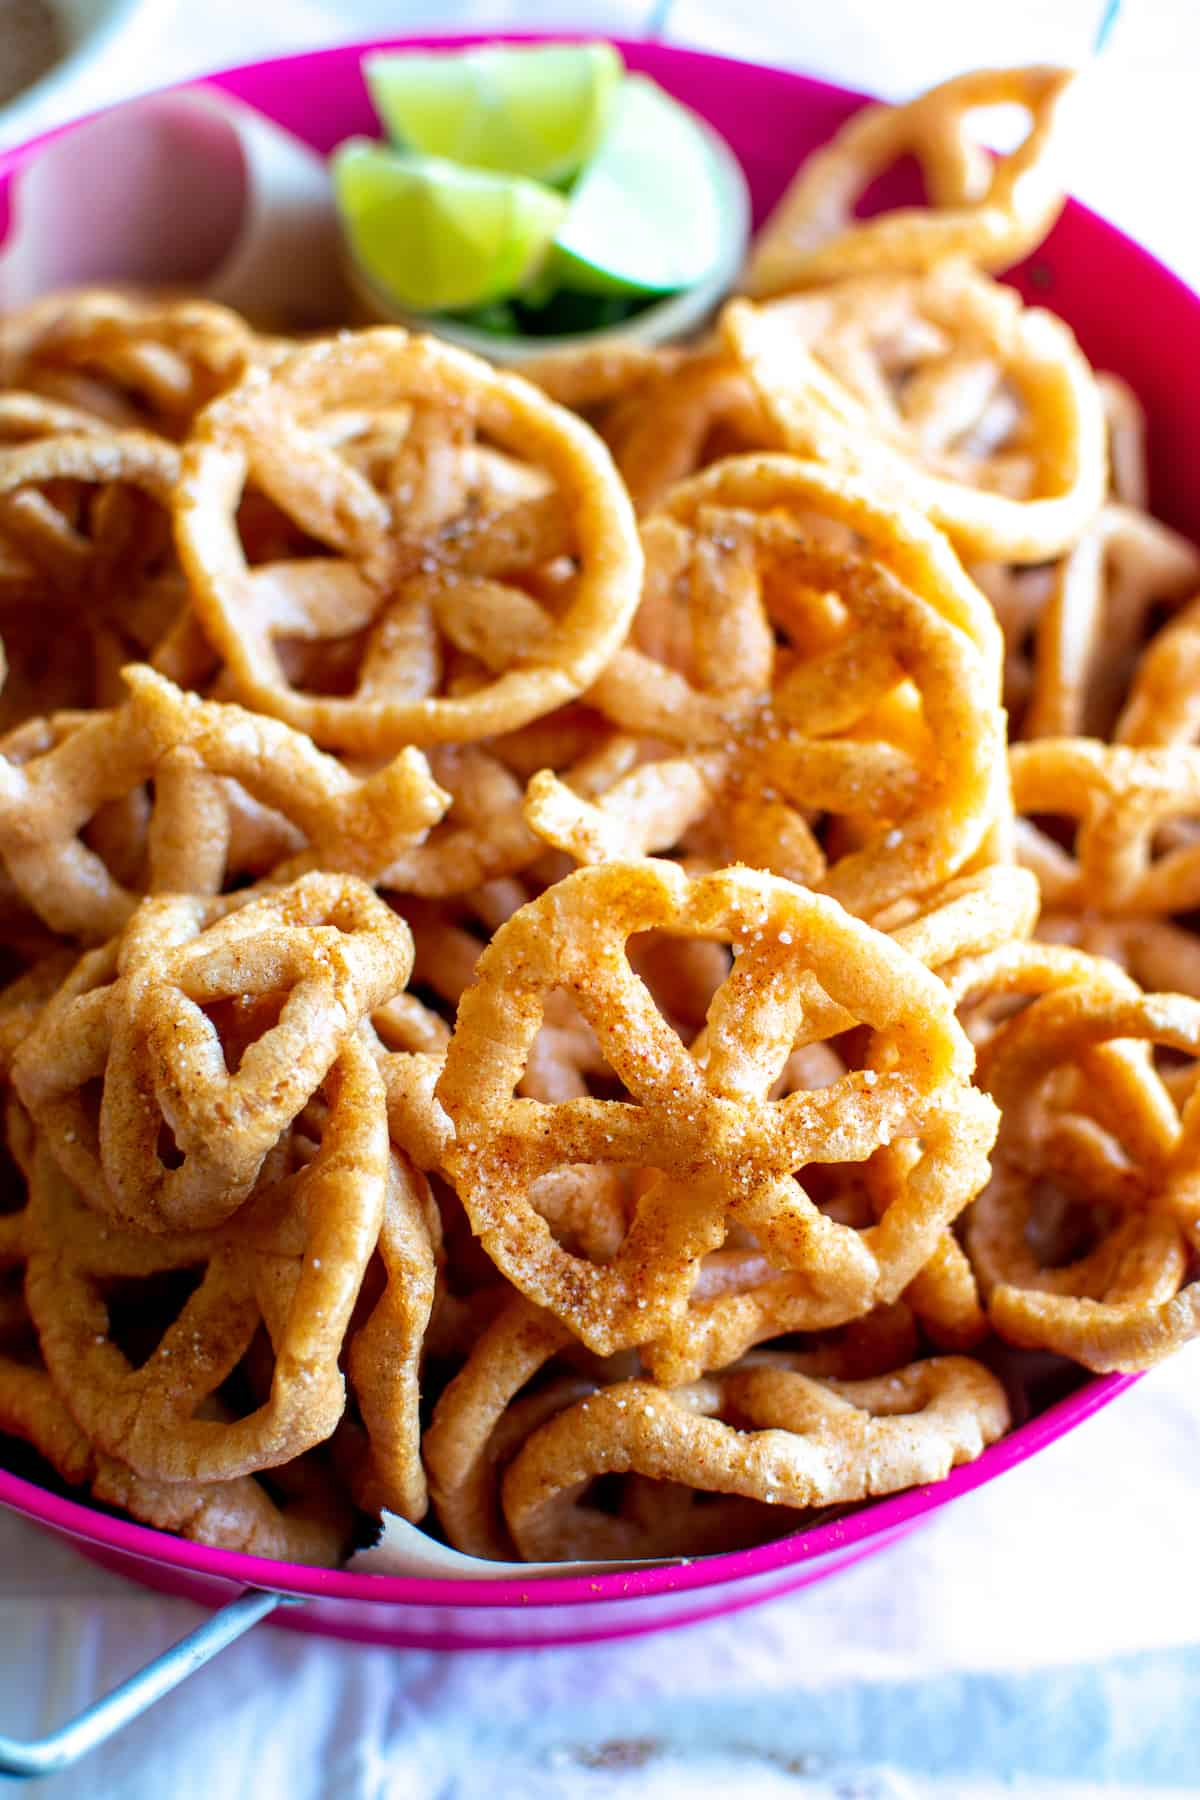 Mexican chips in wheel shapes sprinkled with homemade Chile spice mix in a pink tray.